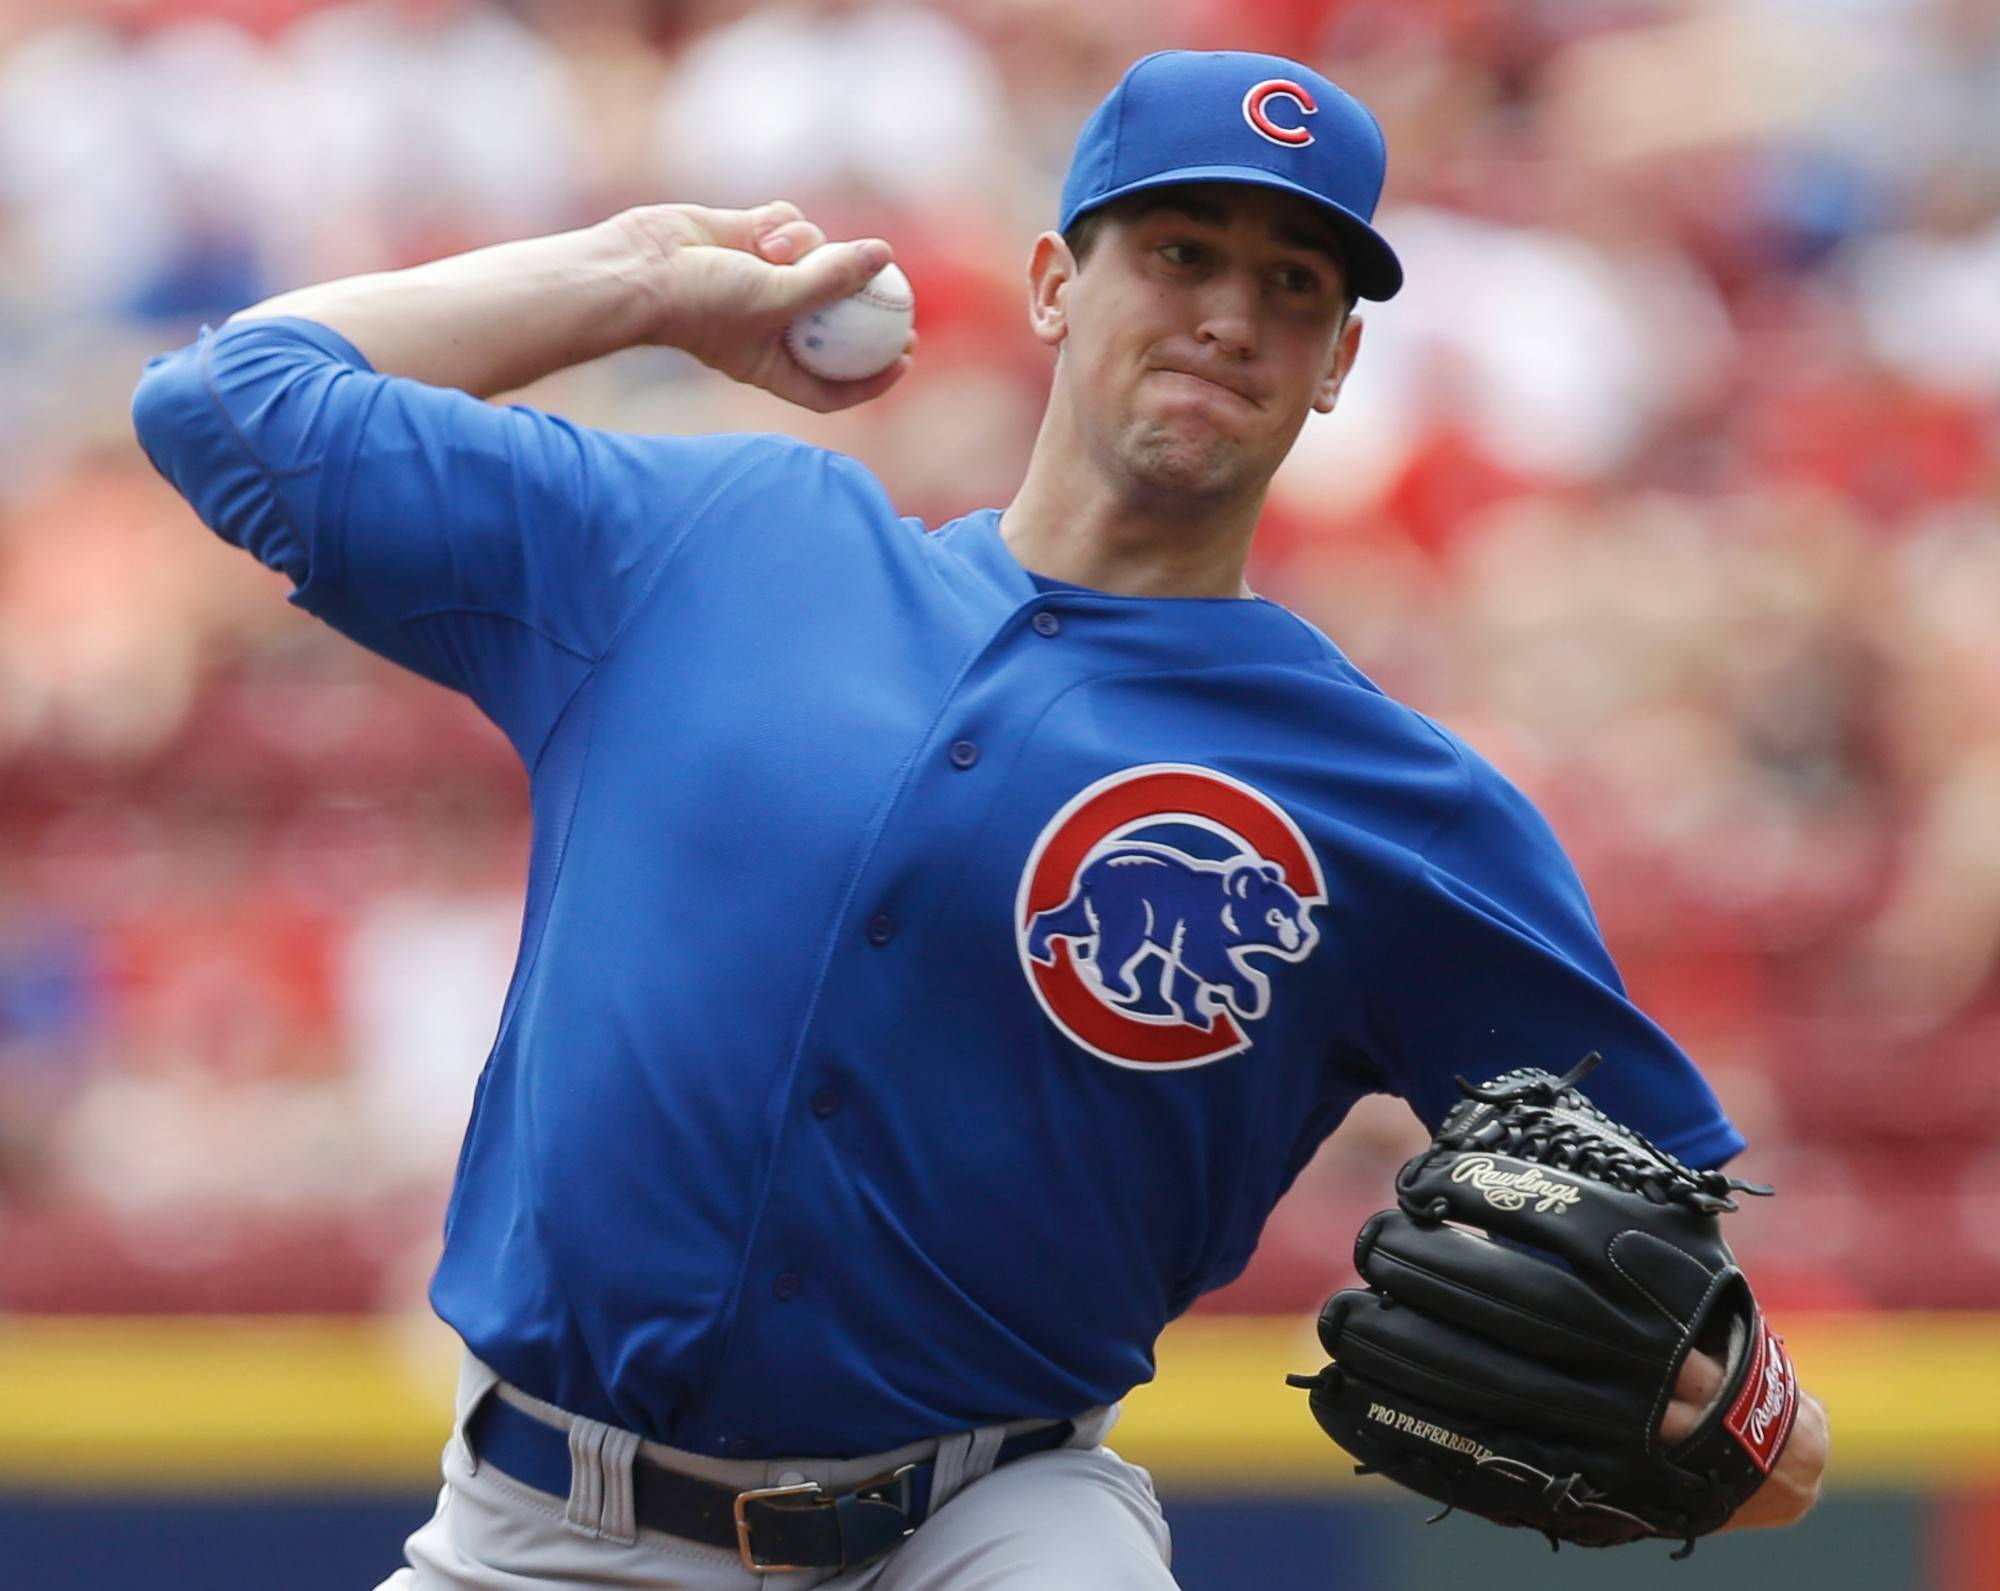 Cubs starting pitcher Kyle Hendricks (28) throws against the Cincinnati Reds in the first inning of a baseball game, Thursday, July 10, 2014, in Cincinnati. Hendricks was making his major league debut.